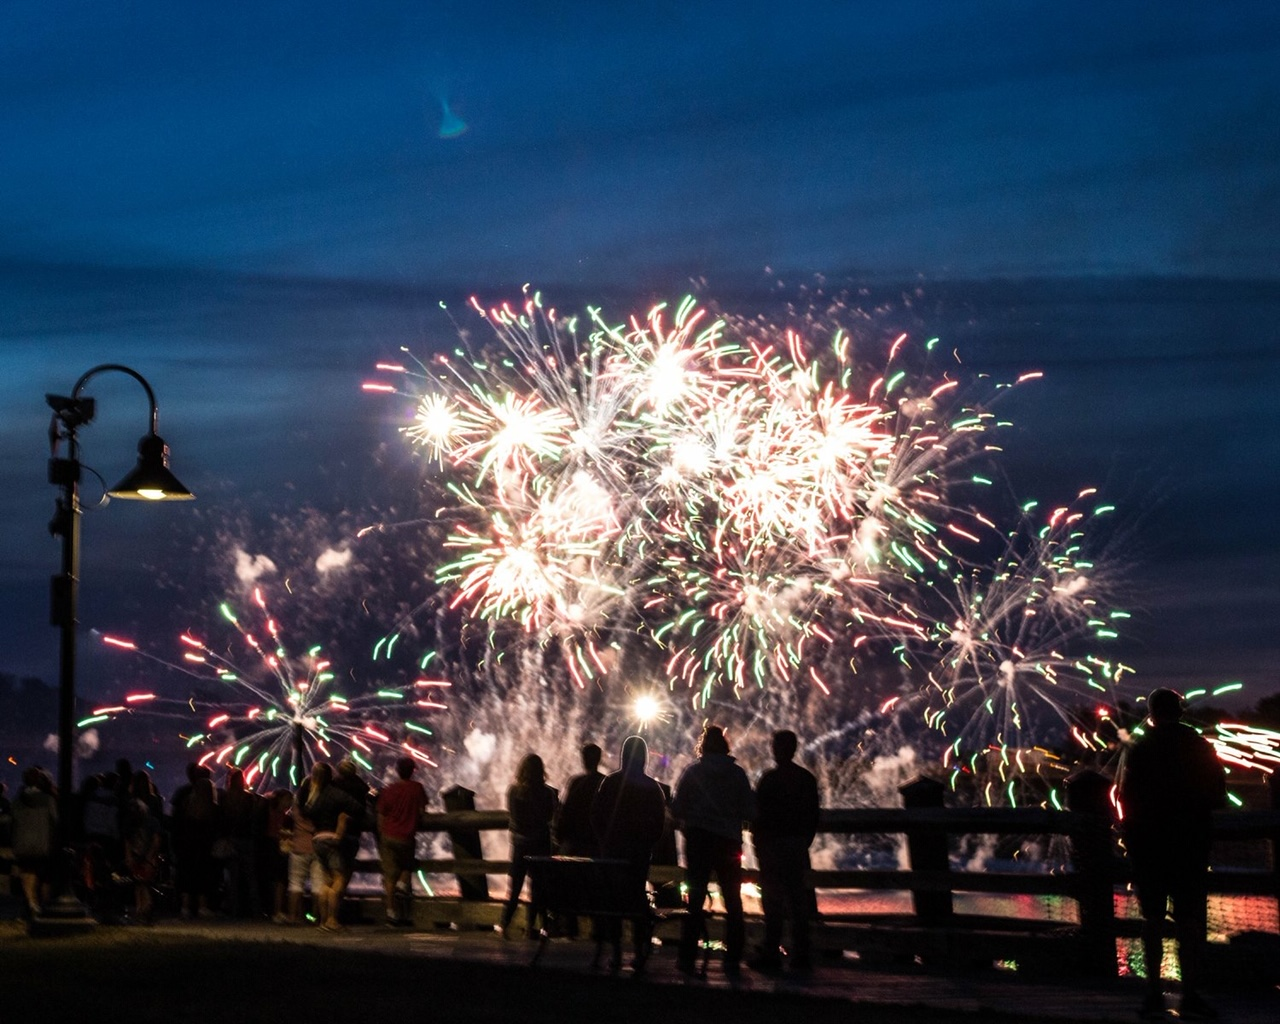 Gardiner sets the standard for Maine fireworks, hands down! - Gardiner boasts multiple fireworks each summer through Central Maine Pyrotechnics. Be a part of the magic.